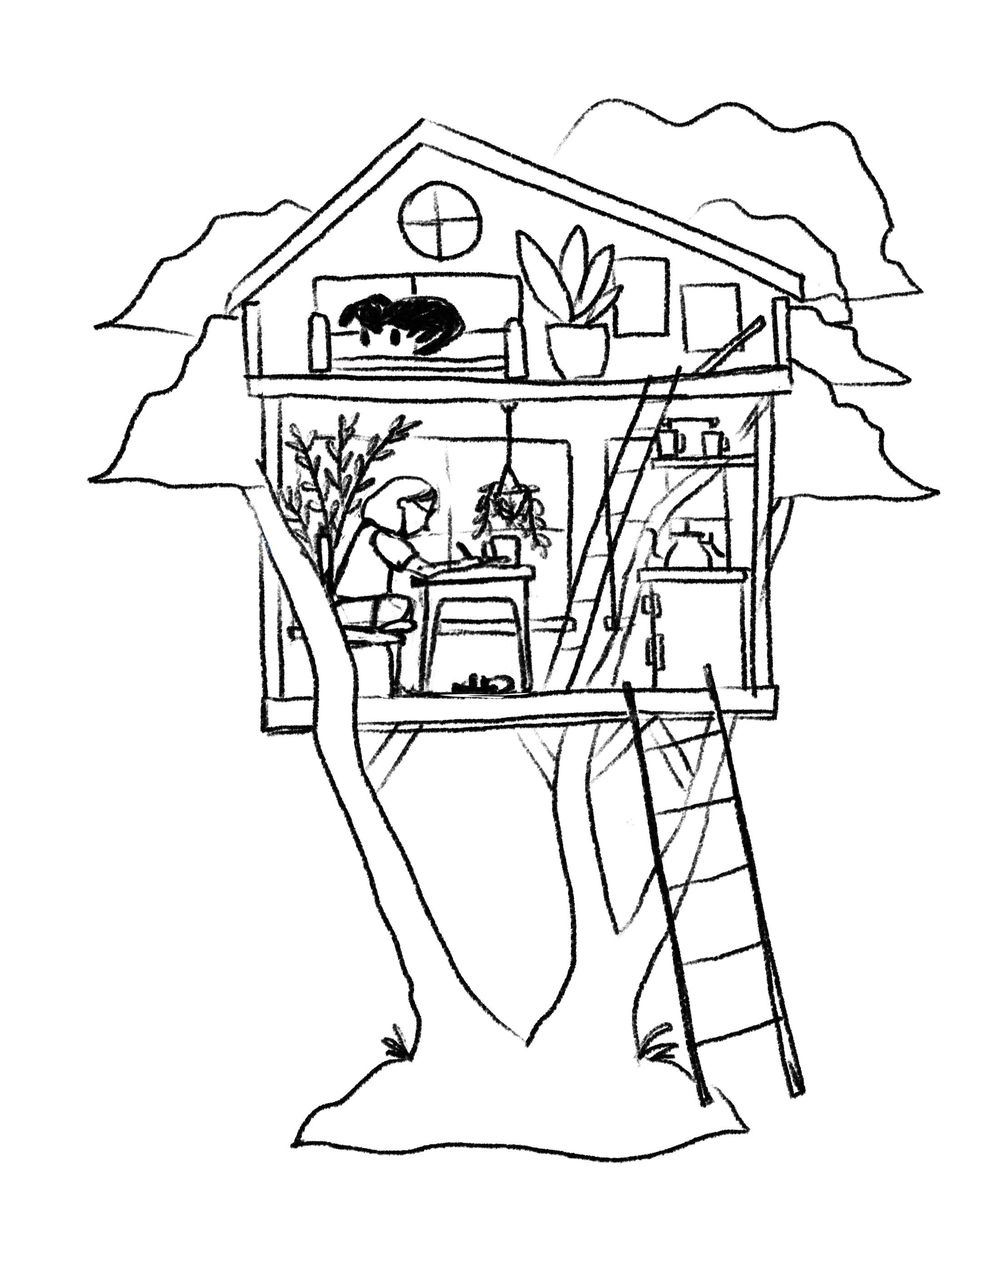 Treehouse Studio - image 1 - student project